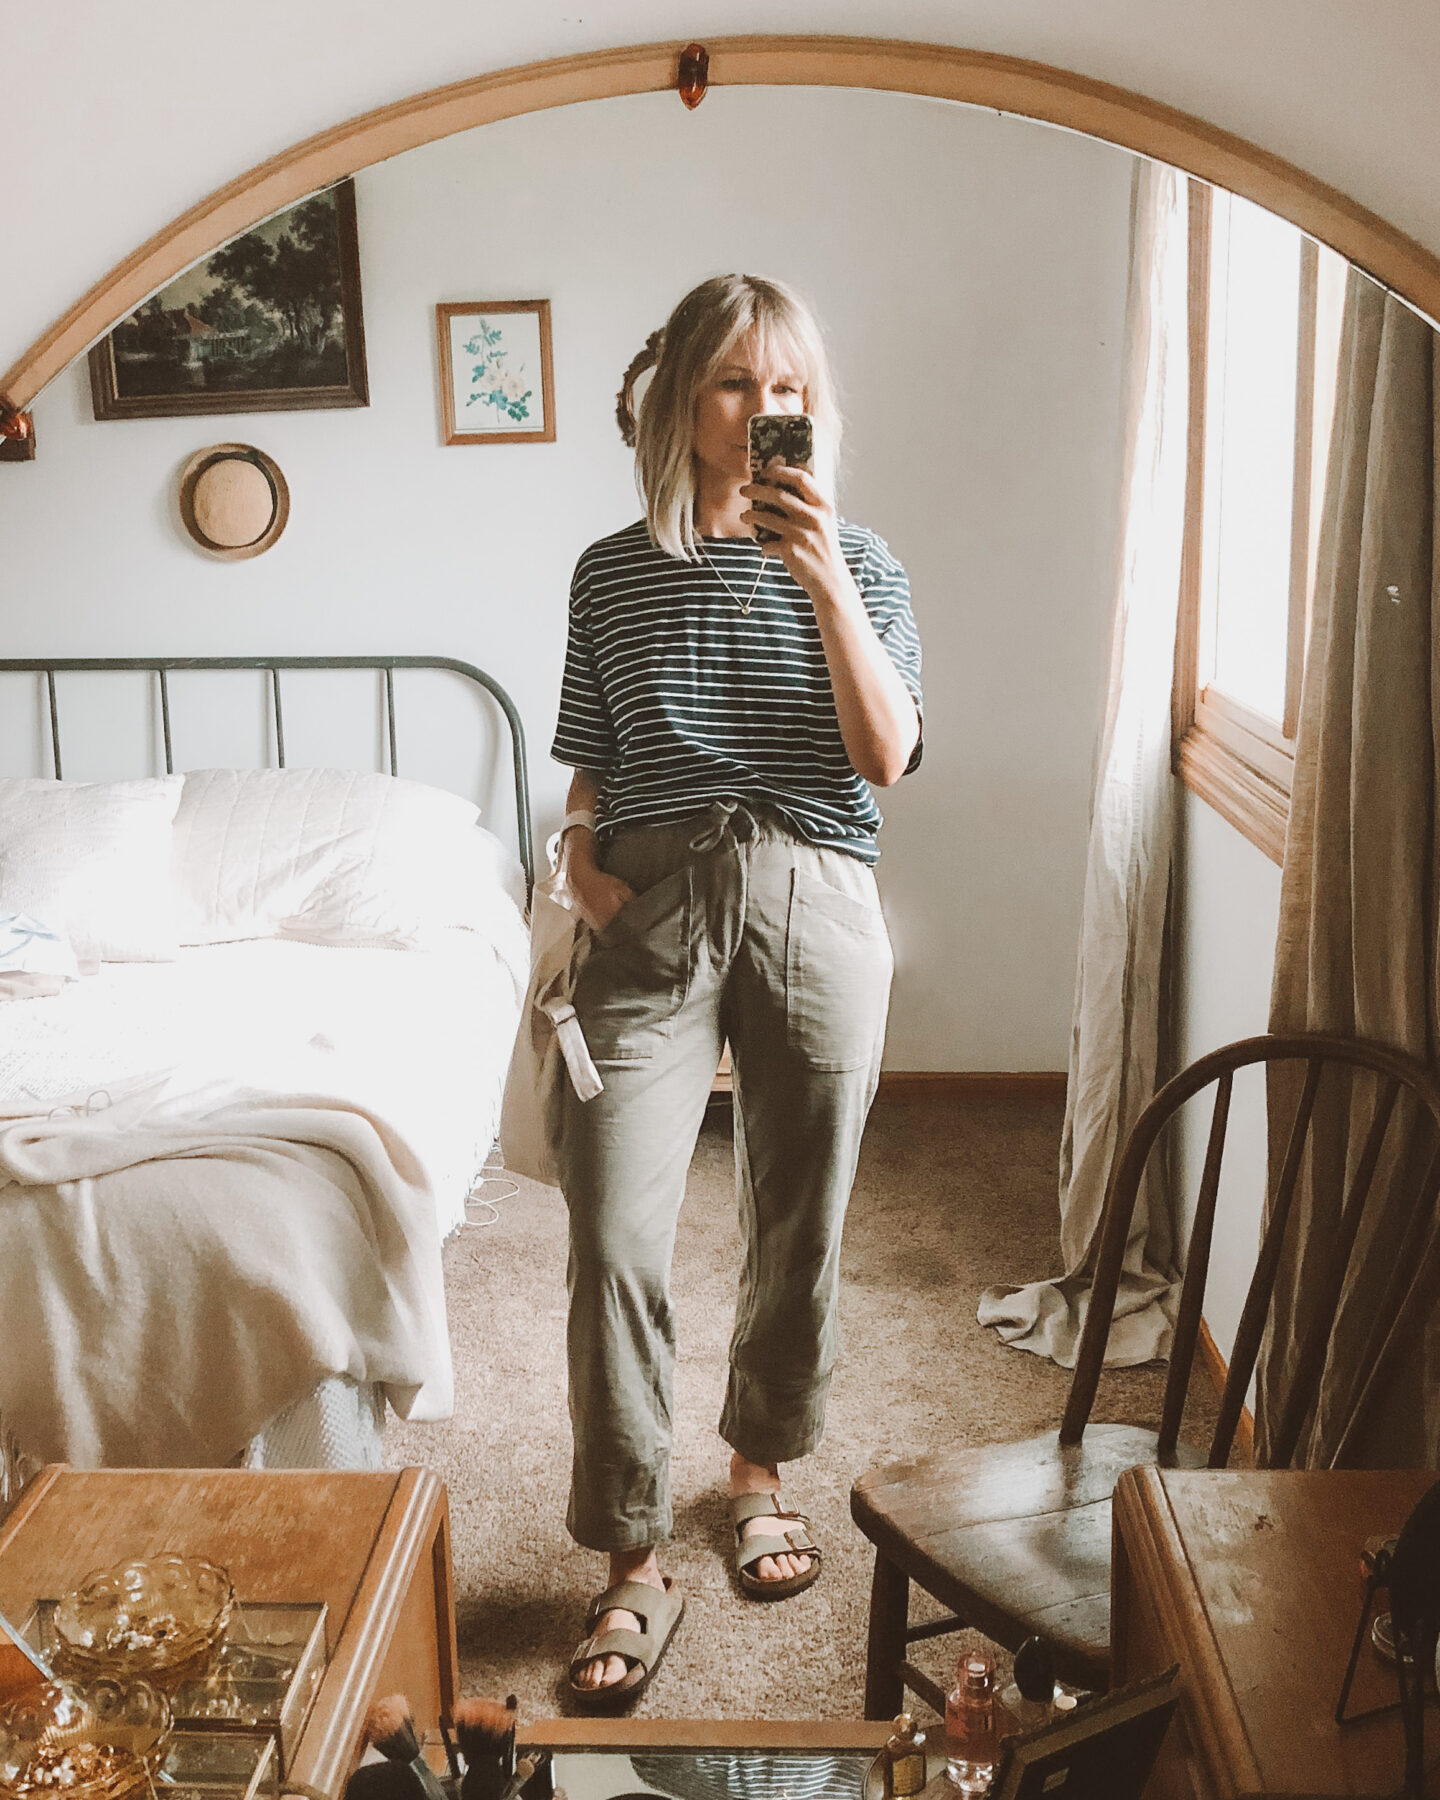 Fall Transitional Dressing: loungewear outfit with a striped navy and white tee, khaki green or olive green sweatpants, and birkenstock arizonas